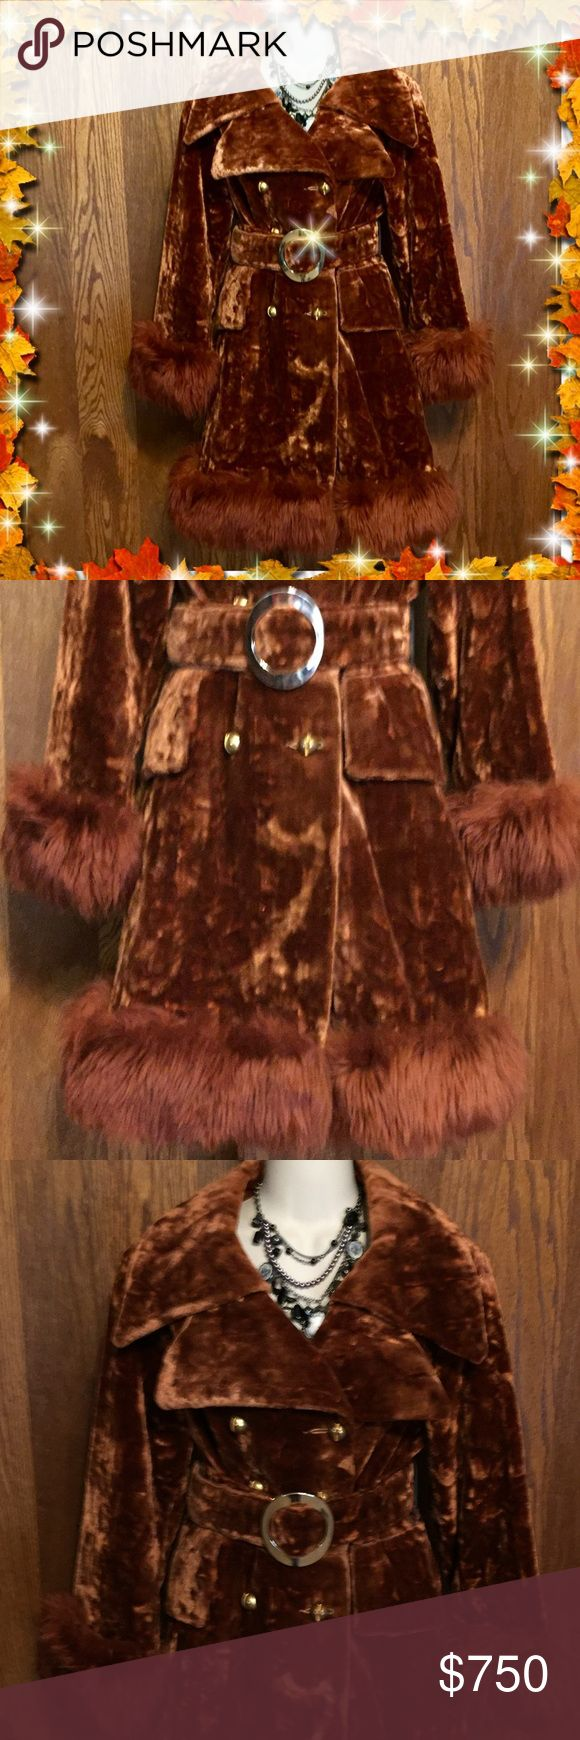 70s Penny Lane princess coat huge fur bell sleeve Gorgeous authentic 1970s Brown copper red lustrous velvet & faux fur! Omg! I love this insane coat it's in excellent condition with gold tone belt. Dramatic long shaggy fur on the bell sleeves & hem. Waist of coat has a flared princess peplum adding even more pizzazz! Fully lined with satin Best fit size small medium Vintage Jackets & Coats